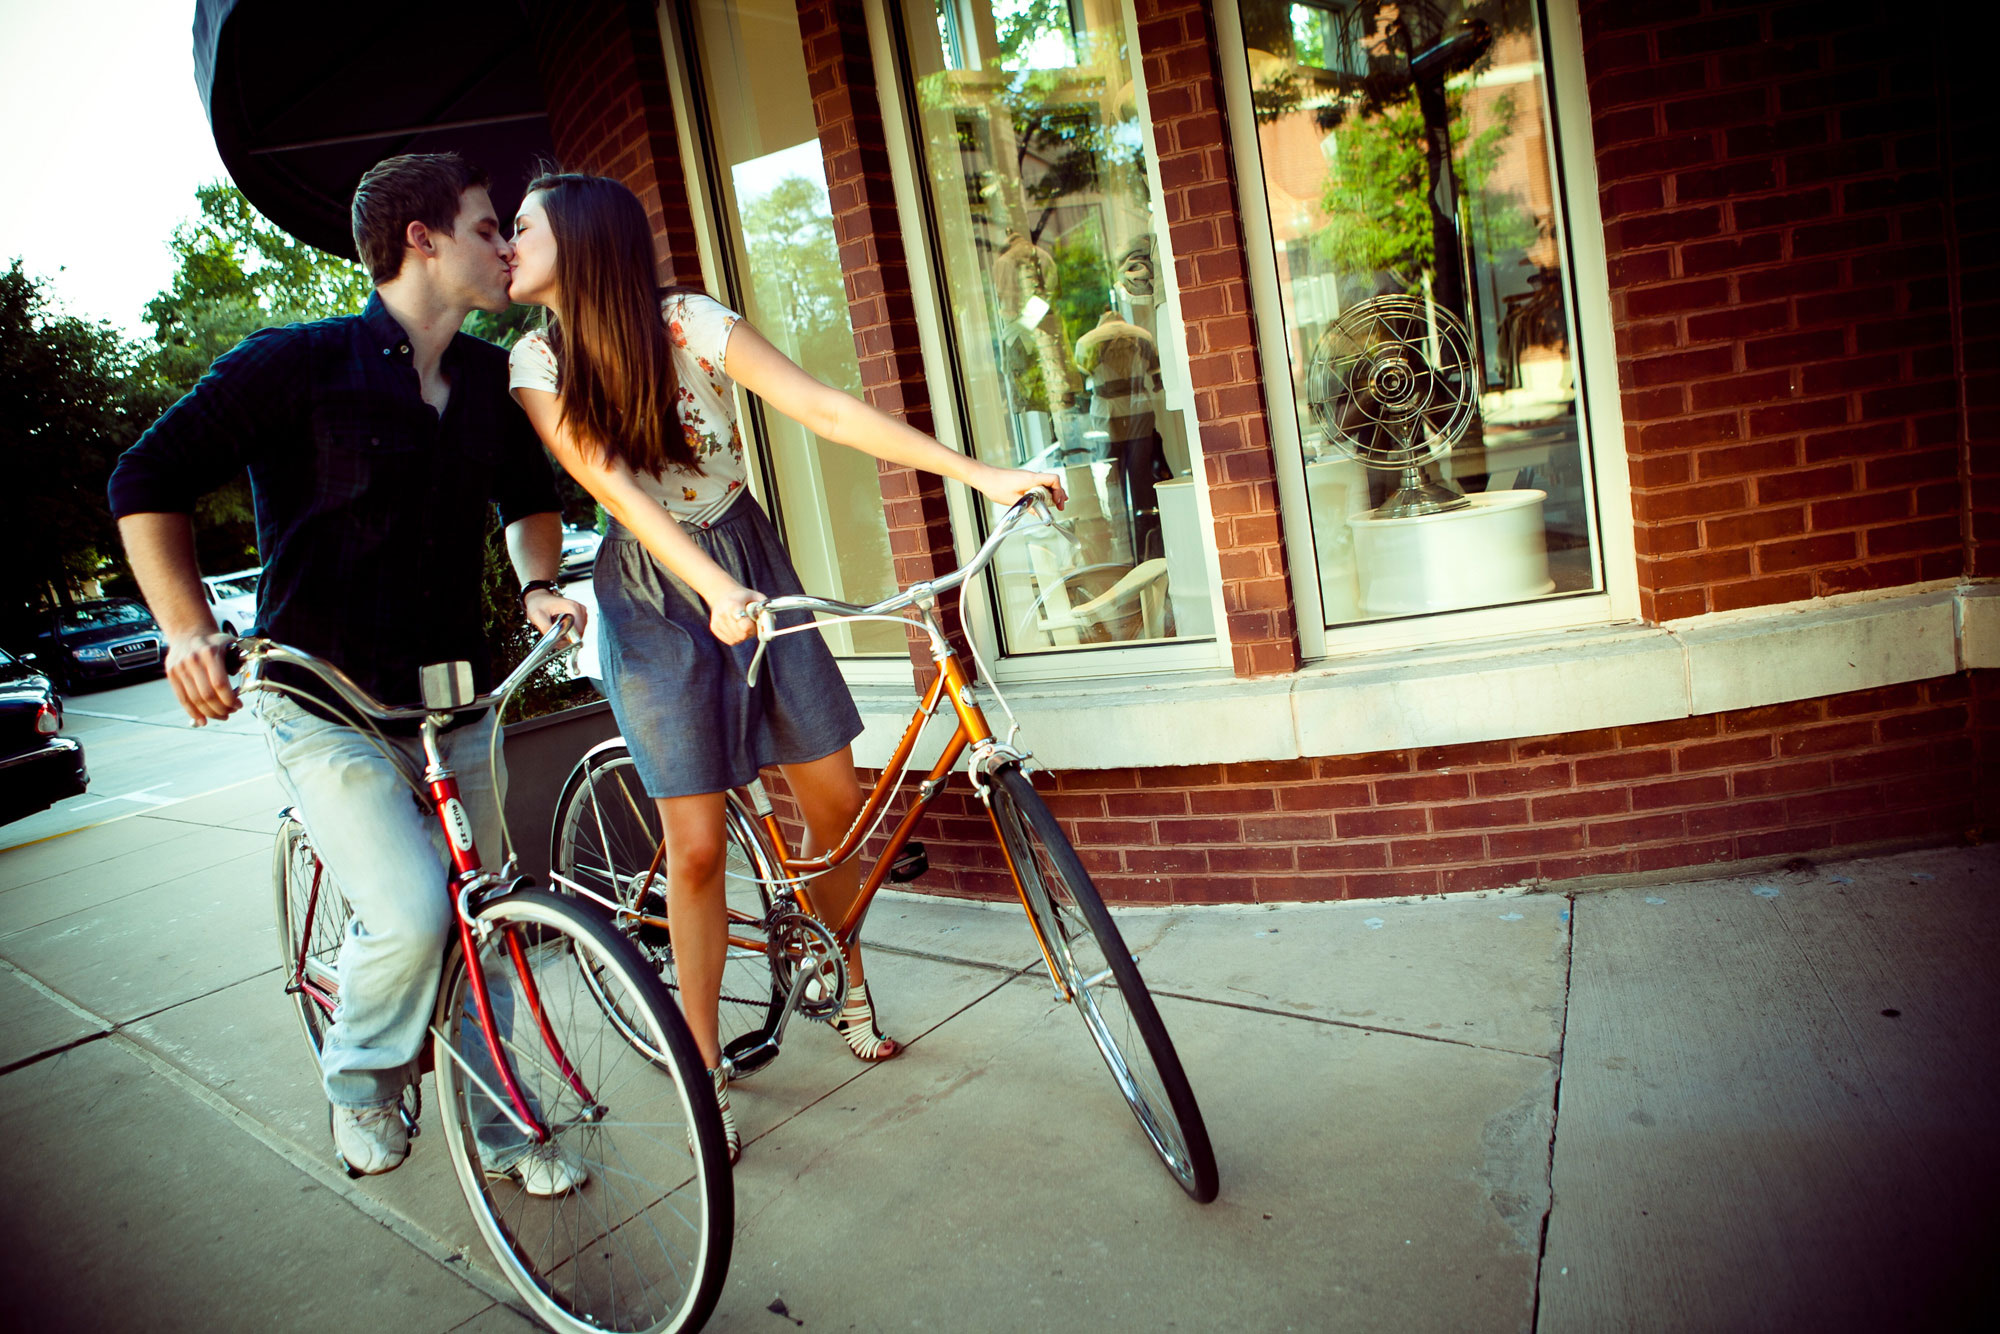 Engagement Photography Couple Riding Bicycles Uptown Dallas Texas